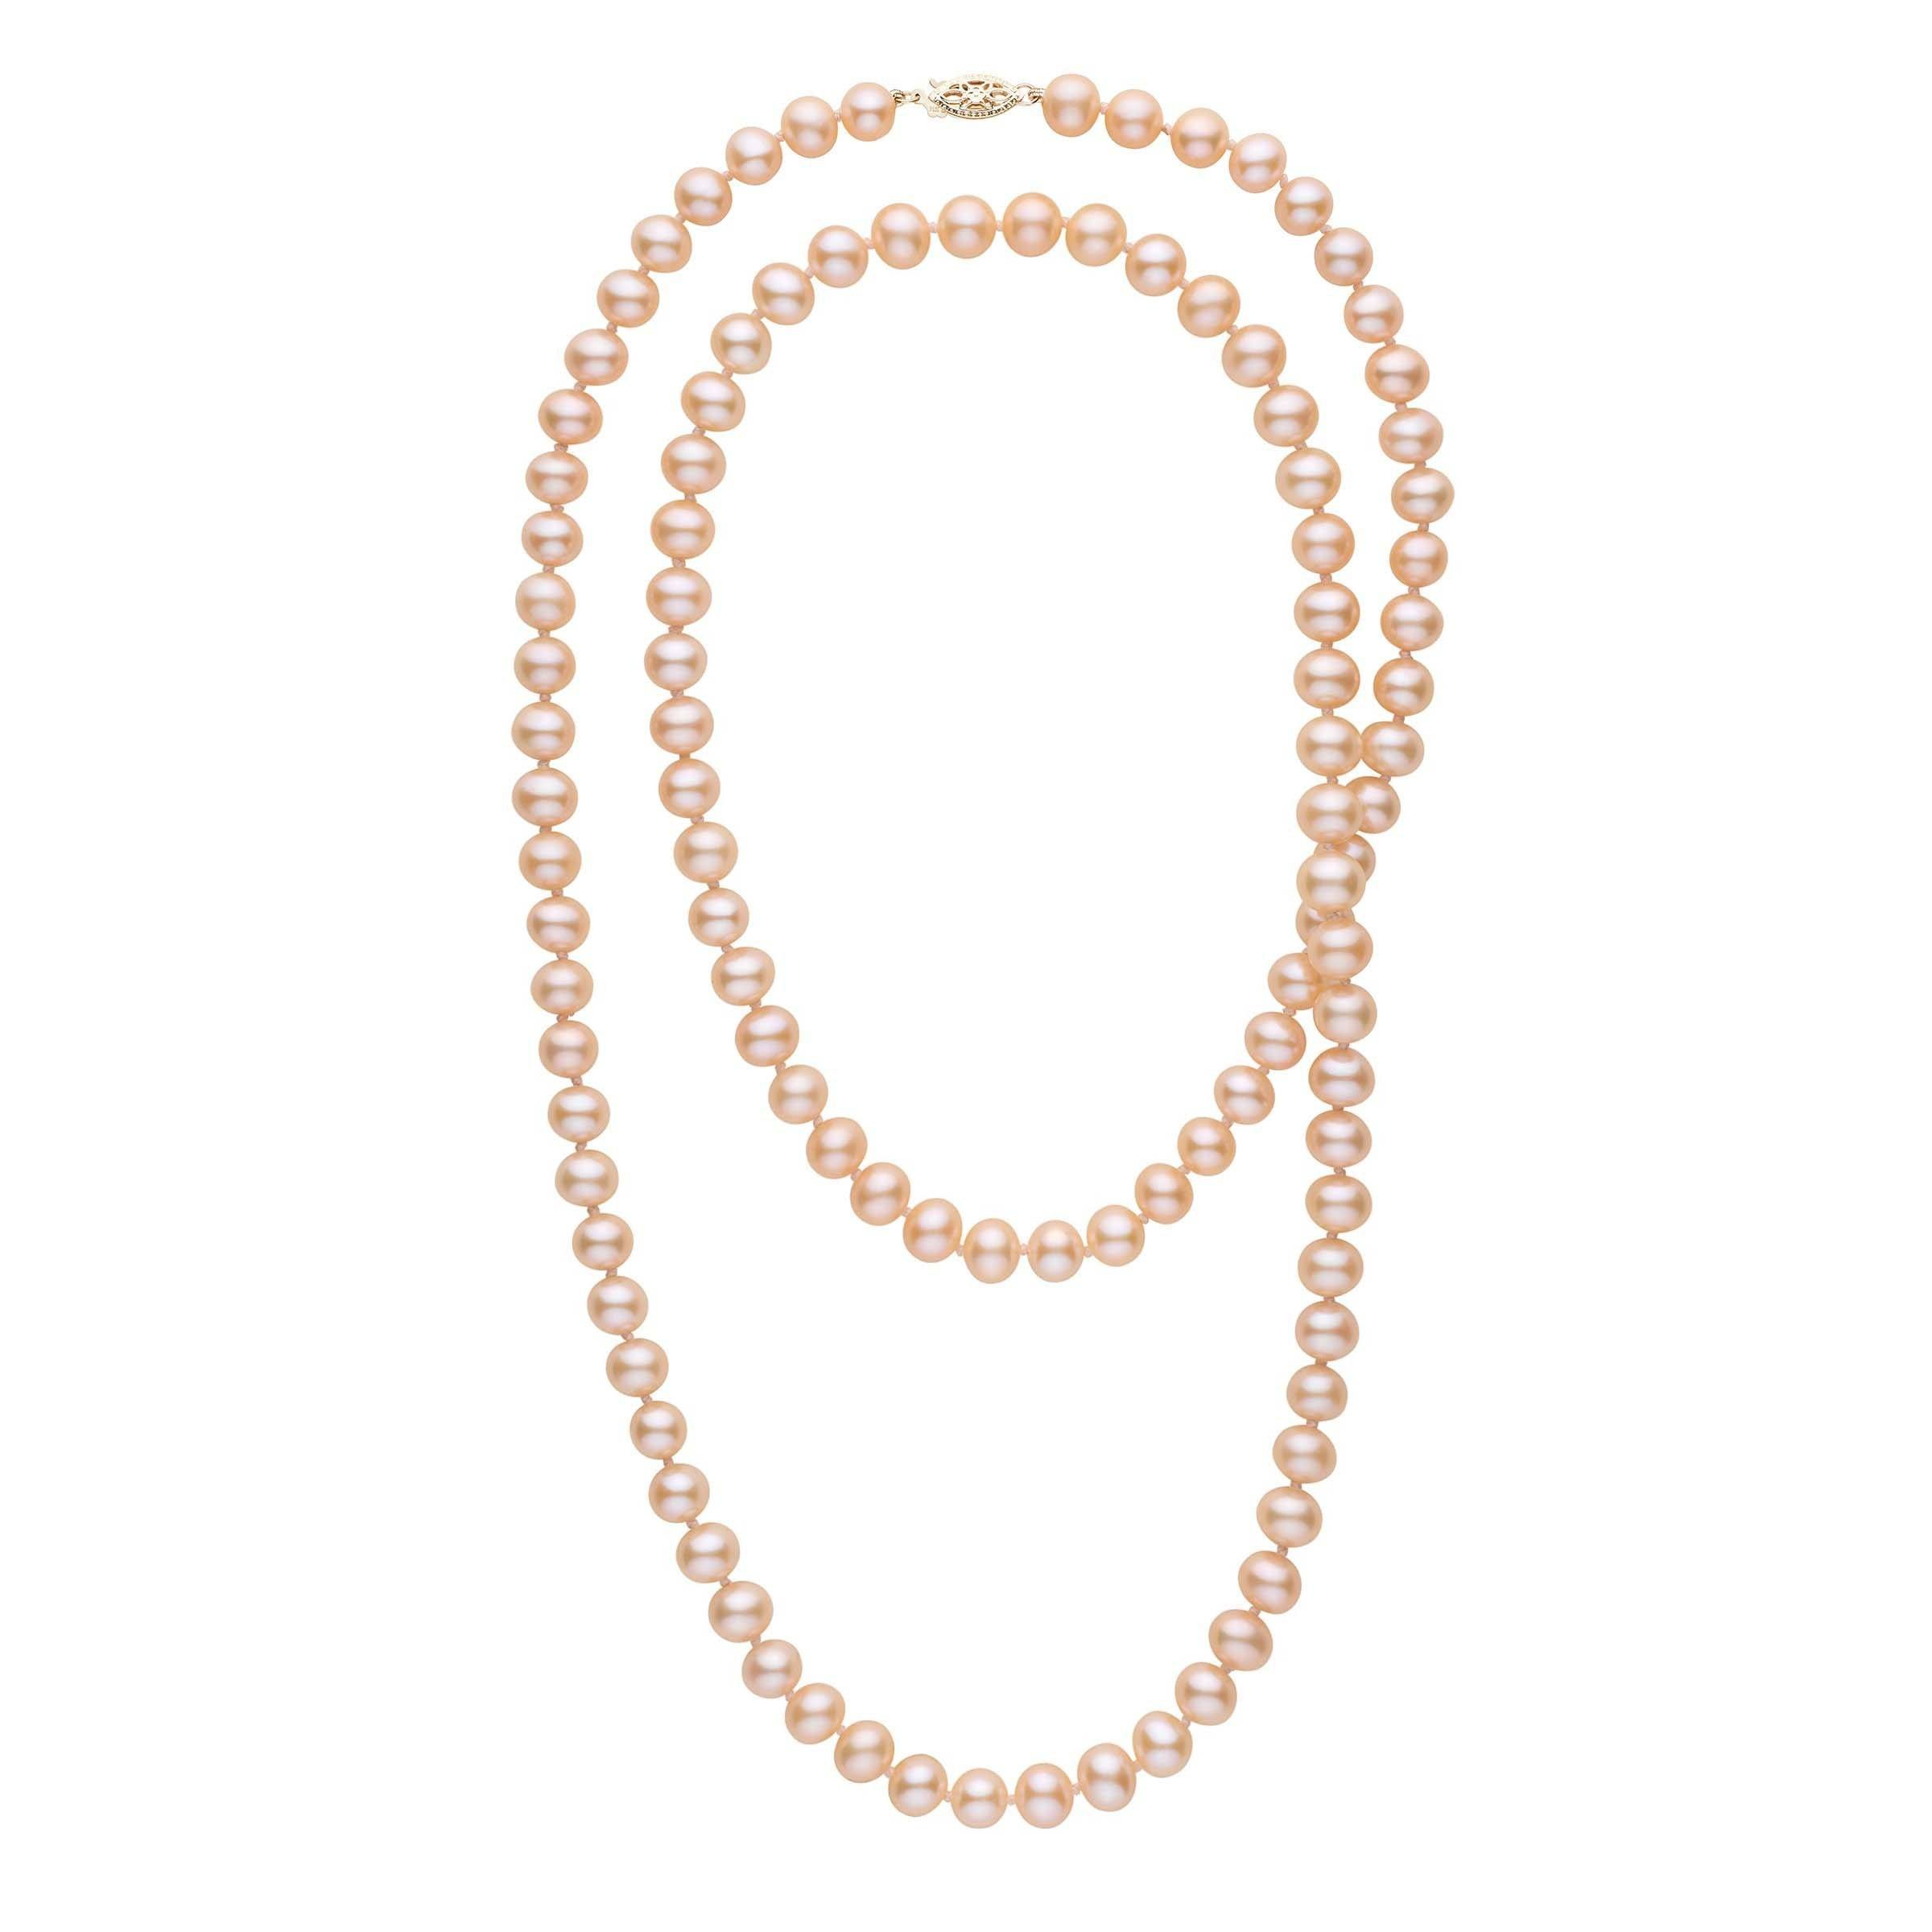 35-inch 7.5-8.0 mm AA+ Pink to Peach Freshwater Pearl Necklace